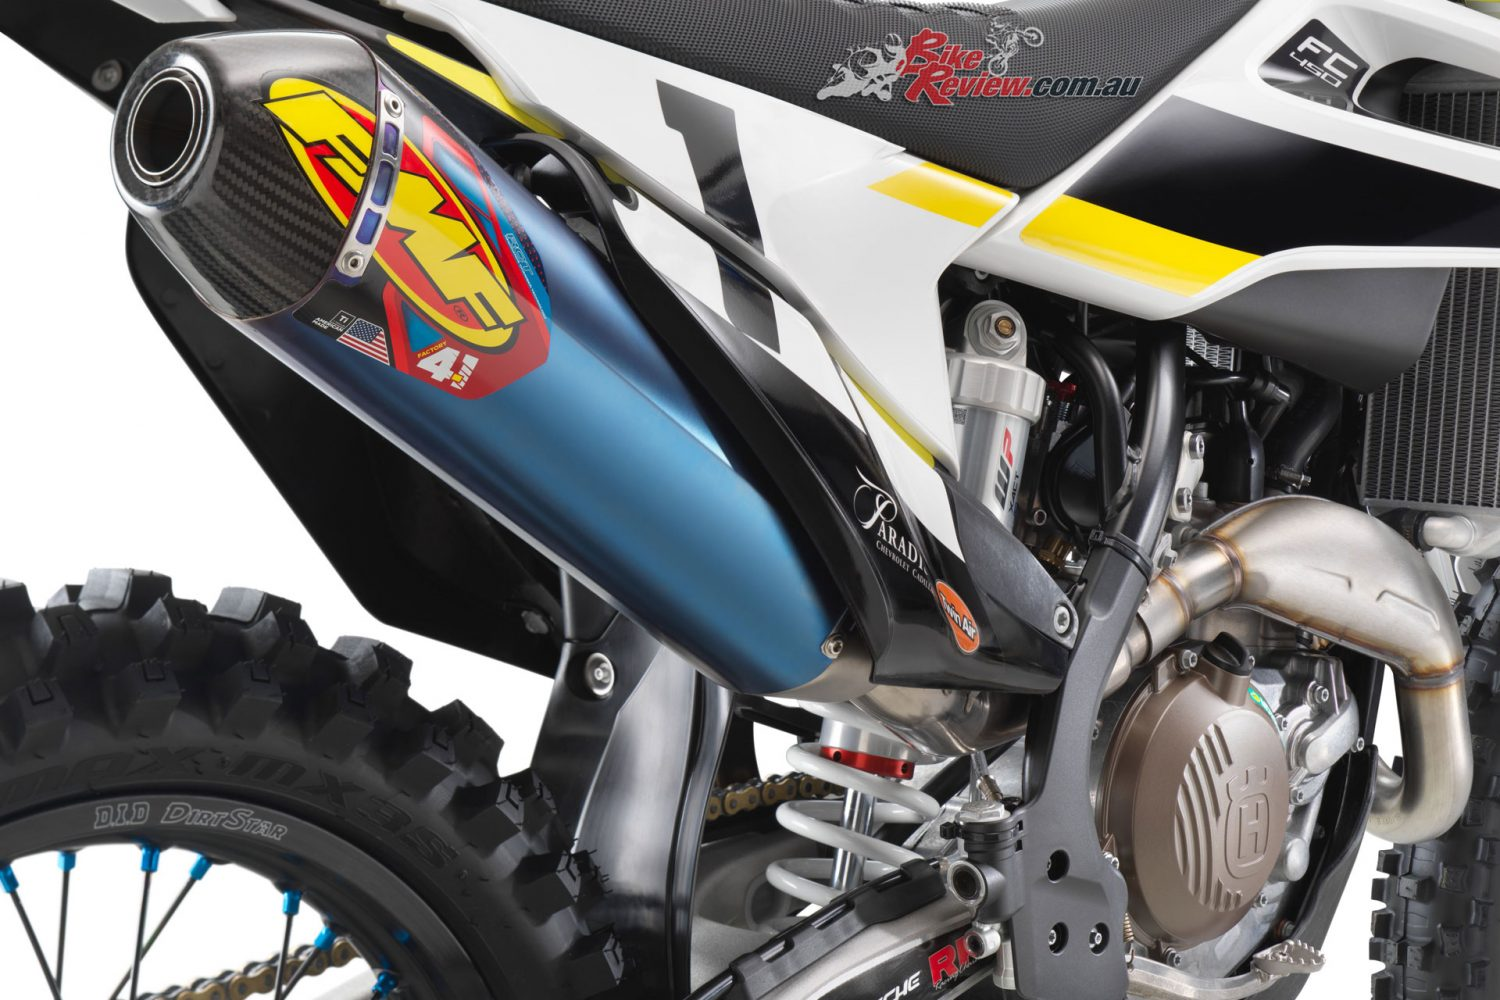 Husqvarna unveil the 2019 limited-production FC 450